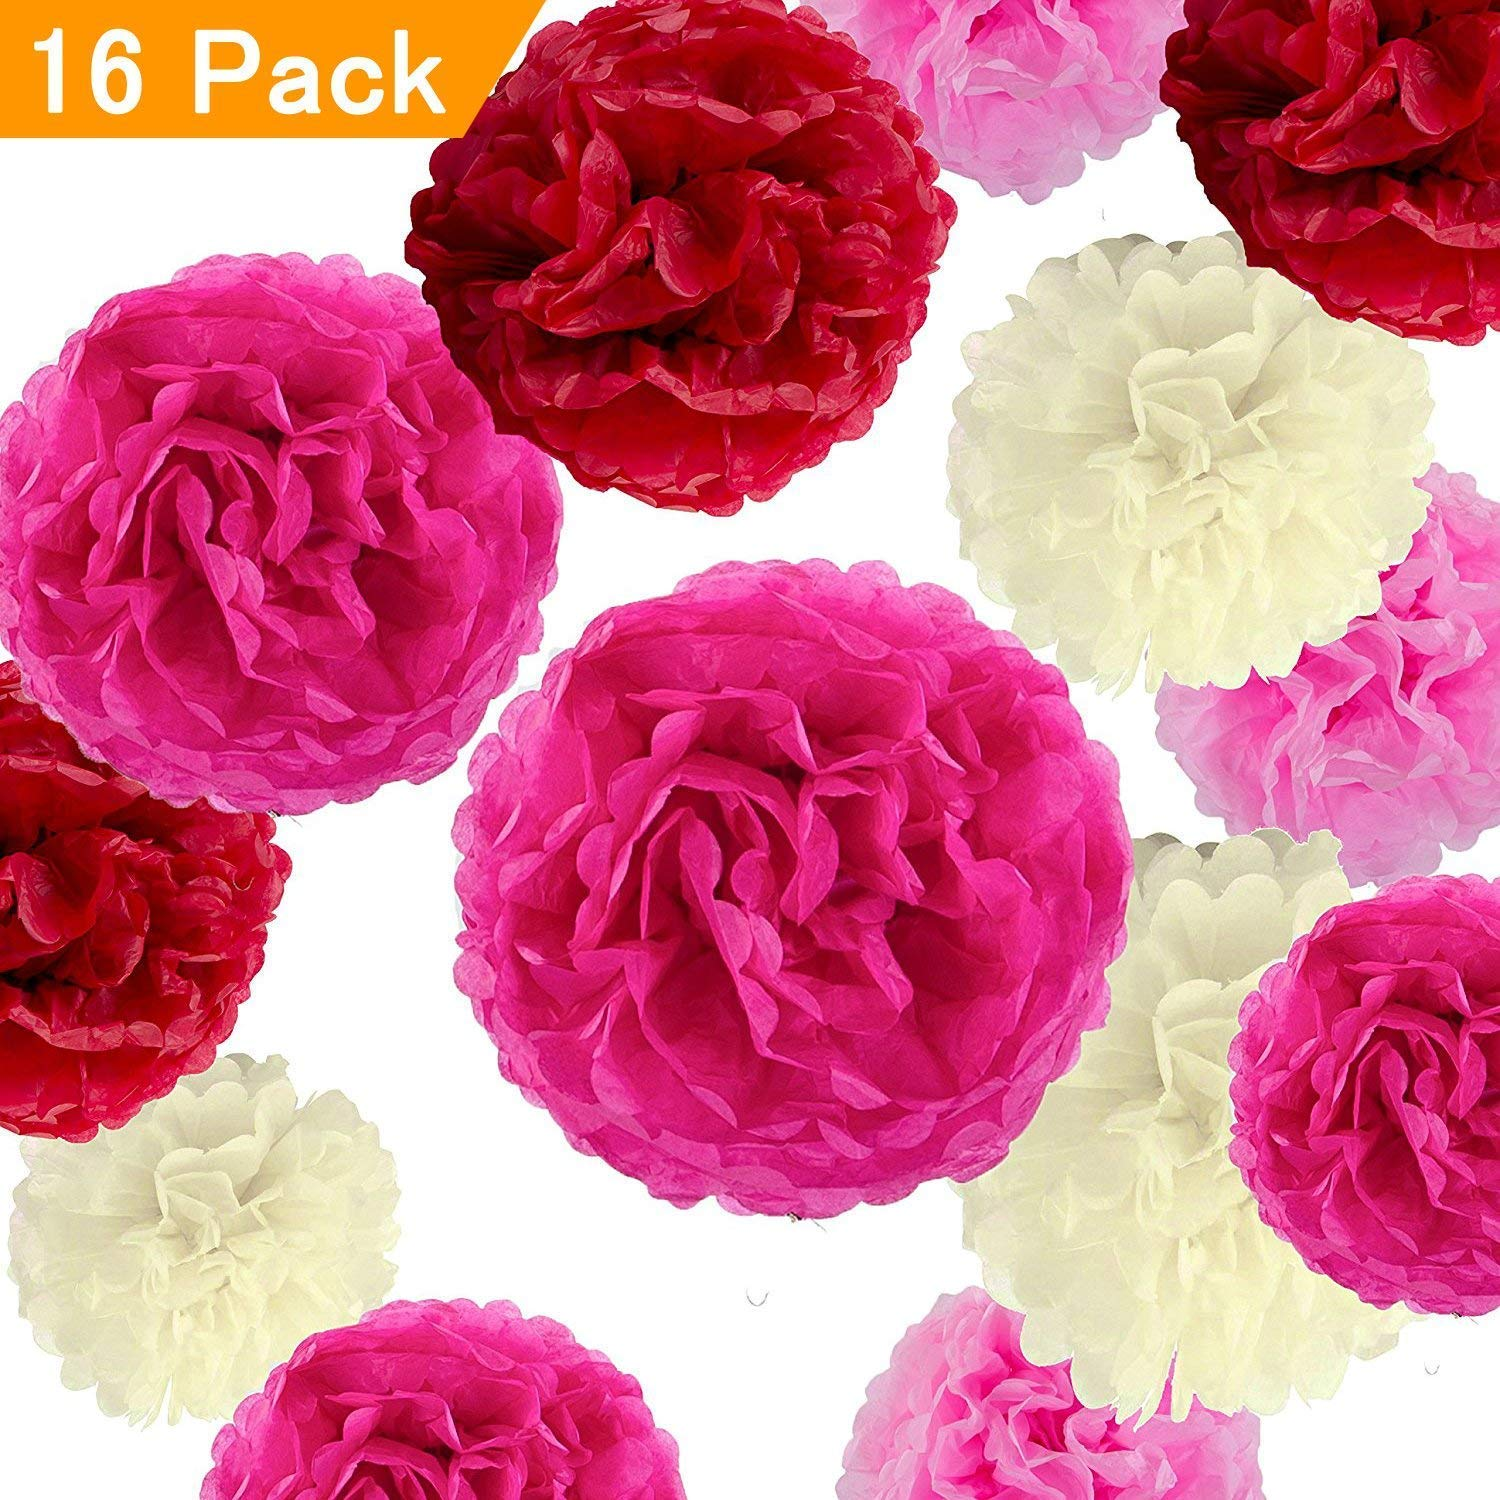 Tissue Paper Flowers,16Pcs Large Tissue Pom Poms Hanging Flower Garland,Eholder Honeycomb Balls Decor for Wedding Party Favor Birthday Christmas Halloween,Pom Garland (hot Pink,Ivory,Rose red,red)